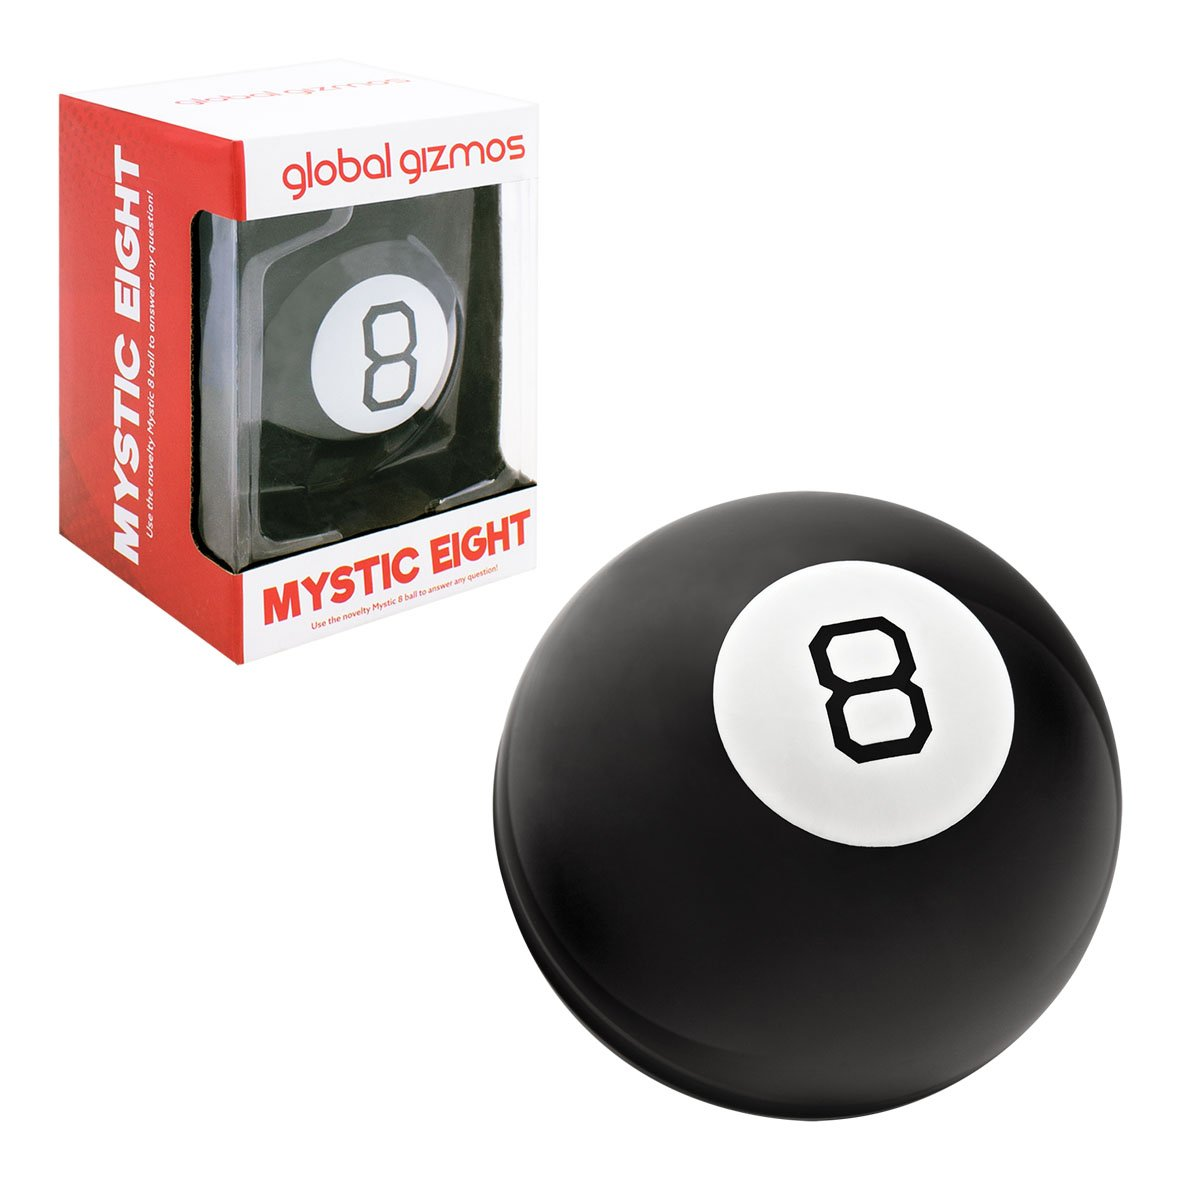 Global Gizmos 50970 Magic Eight 8 Ball / Kids, Adults, Family Fun / Home or Office / Question & Answer Game